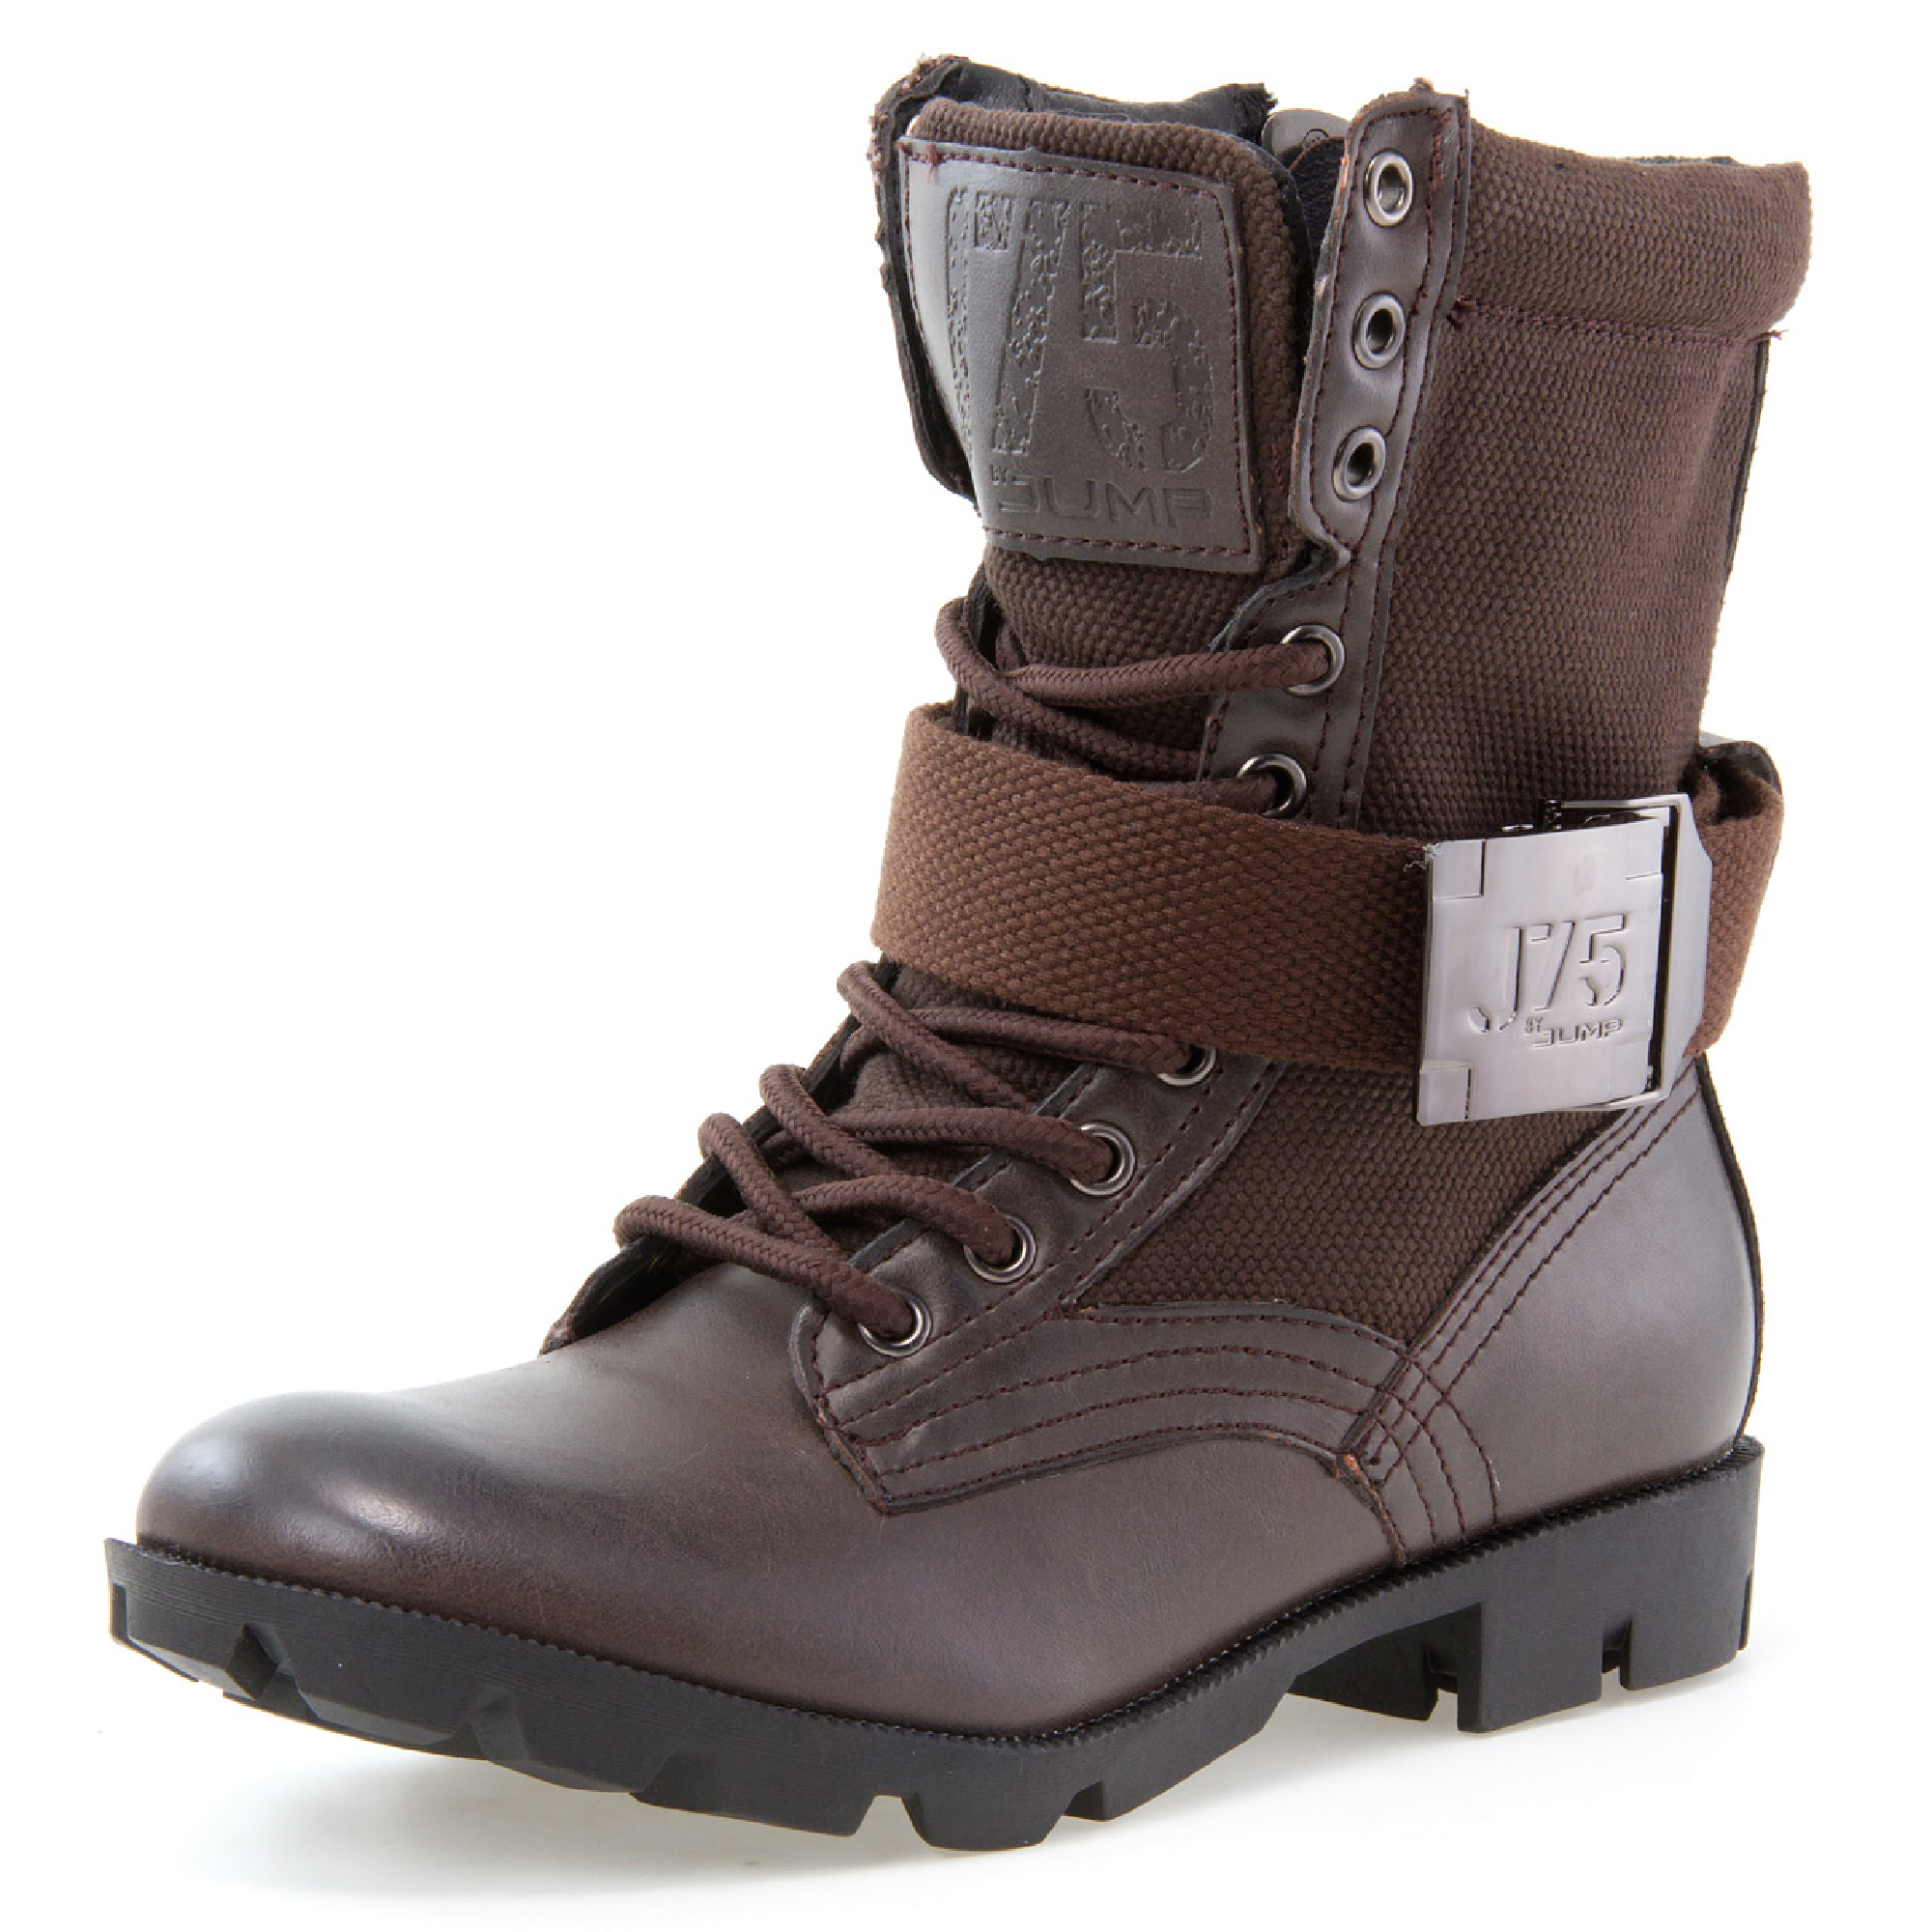 J75 by Jump STRONG Women Round Toe Mid-Calf Military Boot Brown M US 5 Women